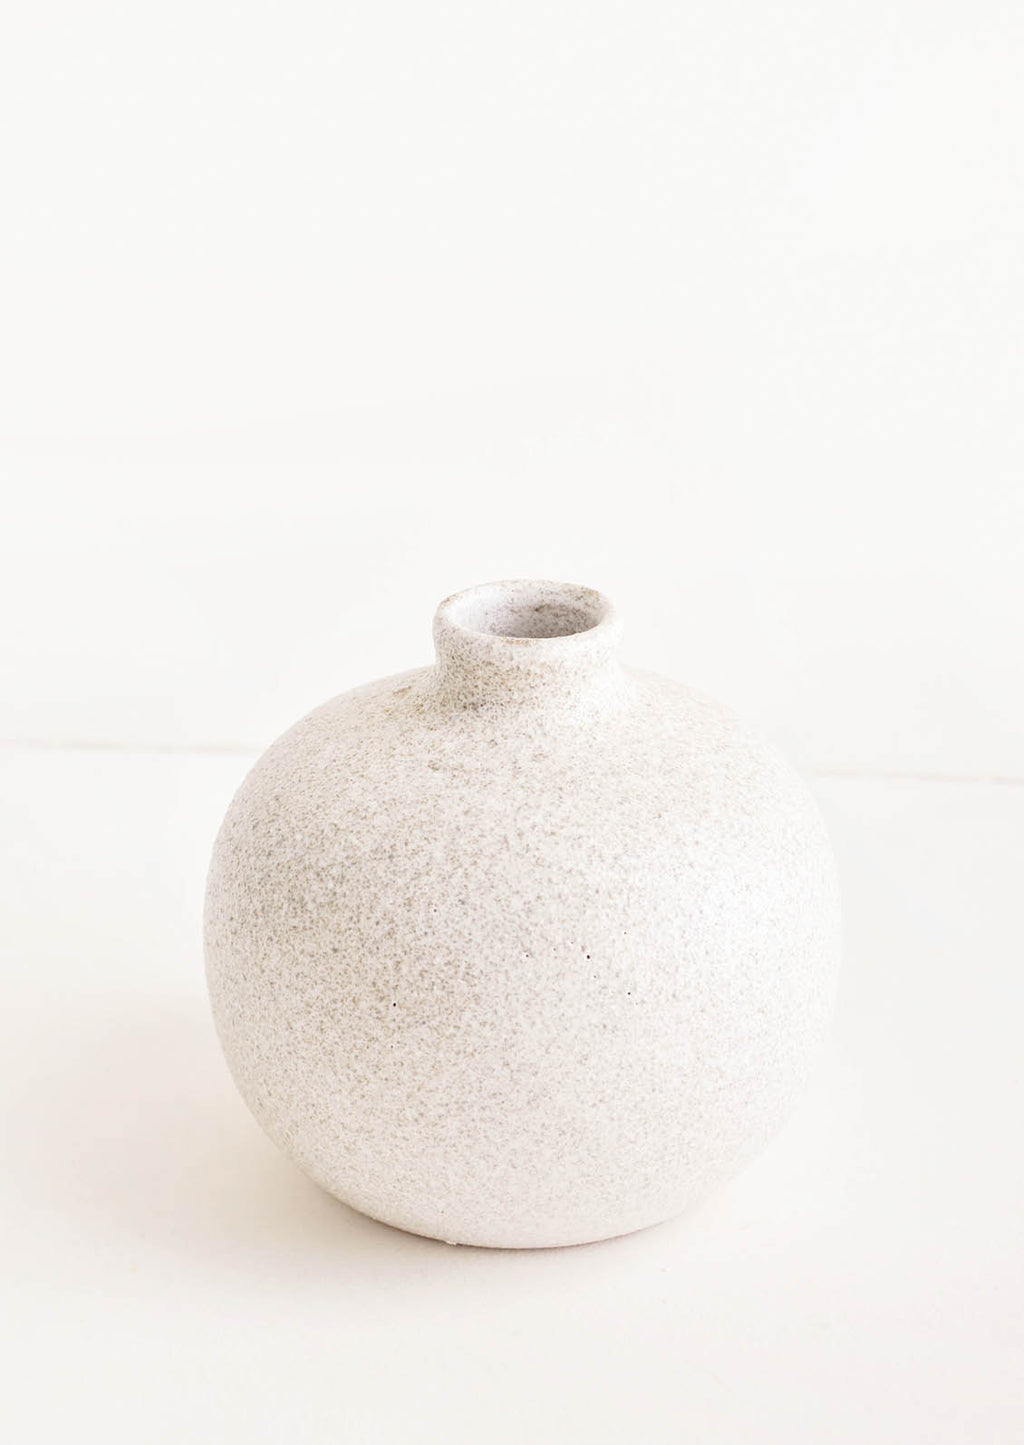 Short [$40.00]: Ceramic vase with bulbous base and narrow opening, in textured light grey glaze